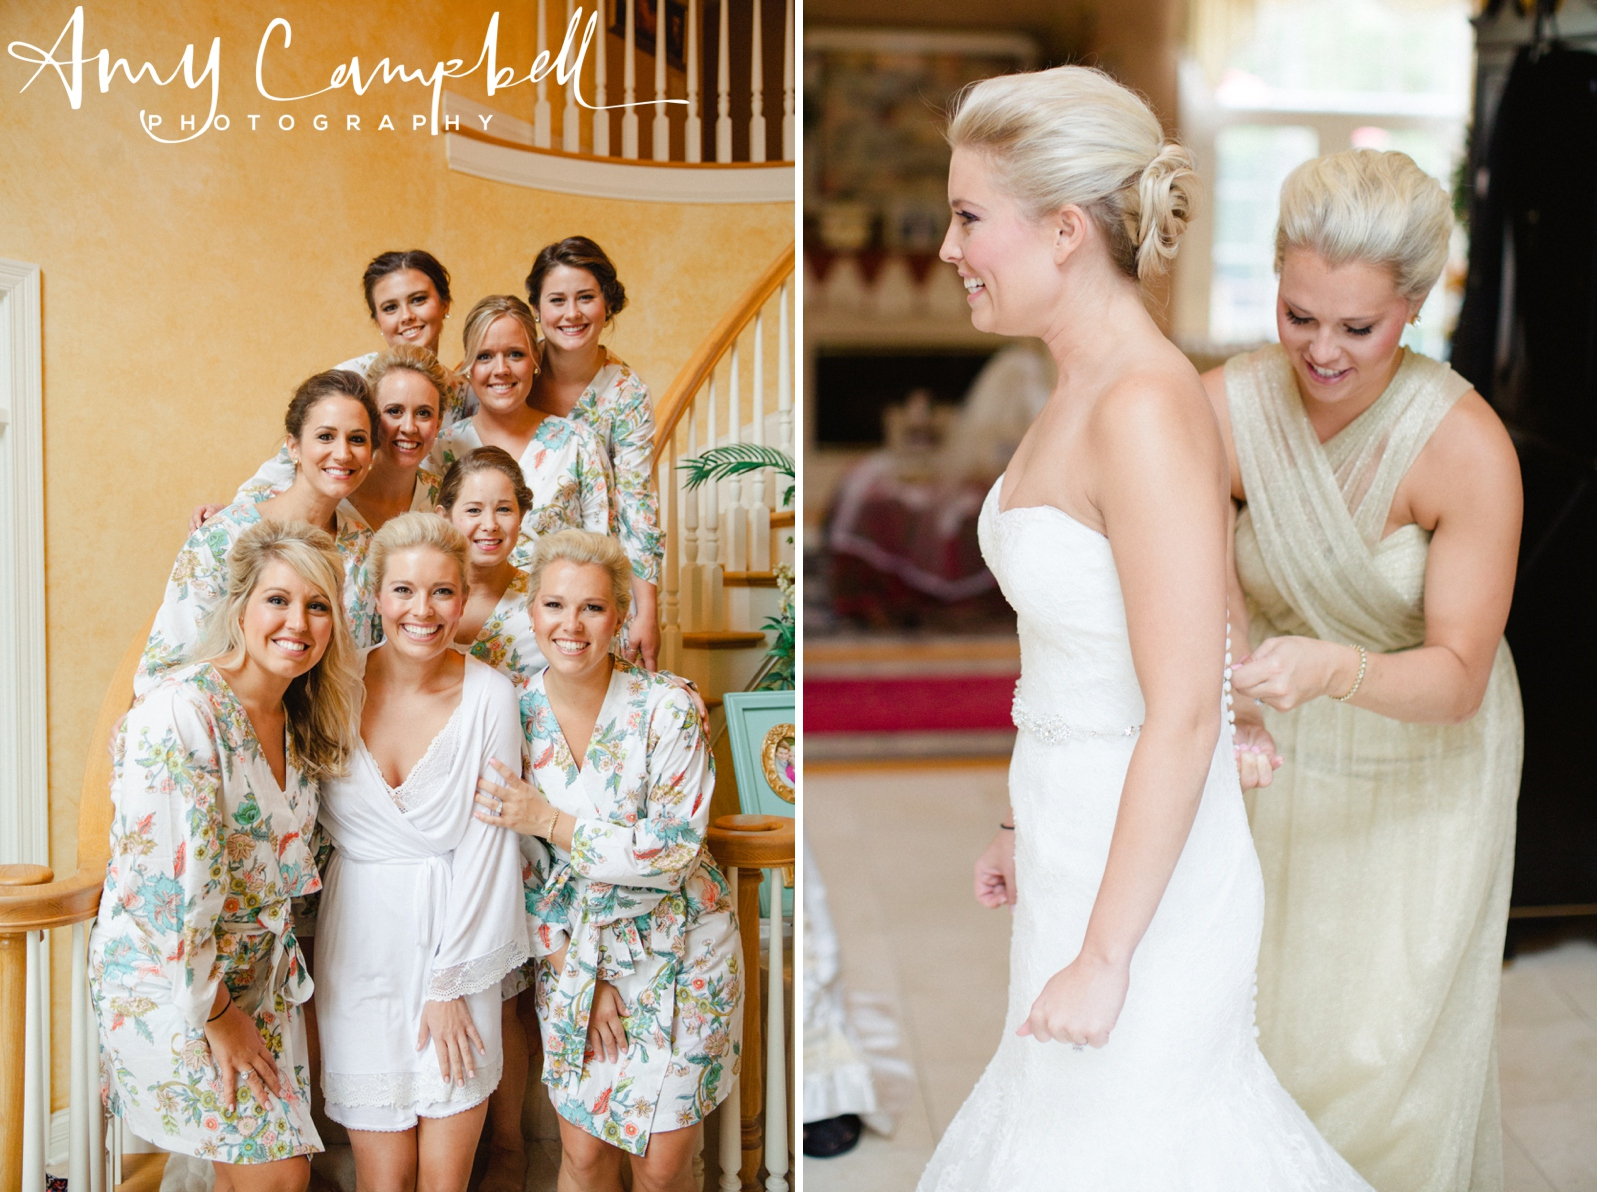 chelseamike_wedss_pics_amycampbellphotography_006.jpg